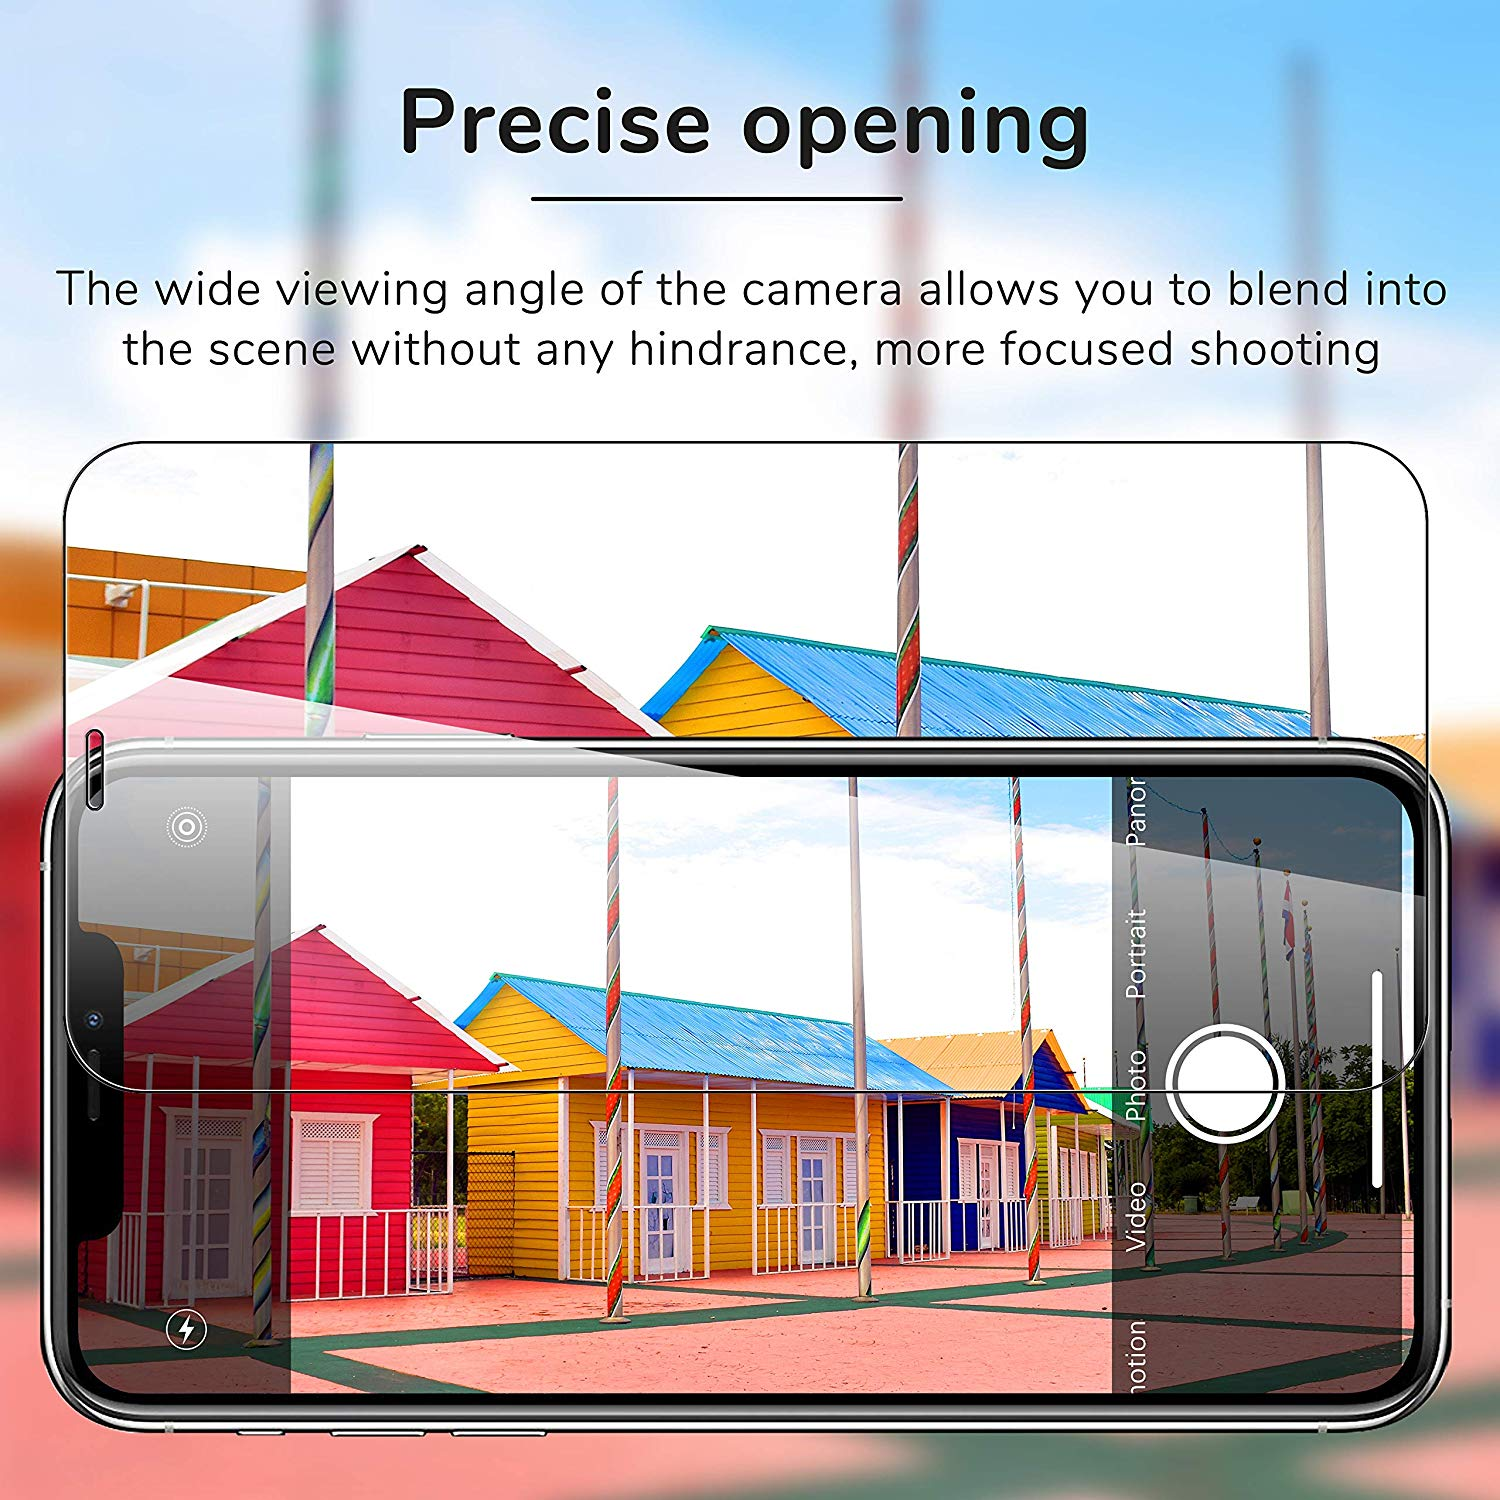 [4 Pack] UniqueMe 2 Pack Tempered Glass Screen Protector +2 Pack Tempered Glass Camera Lens Protector 9H Hardness for Apple iPhone 11 Pro Max (6.5 inches)